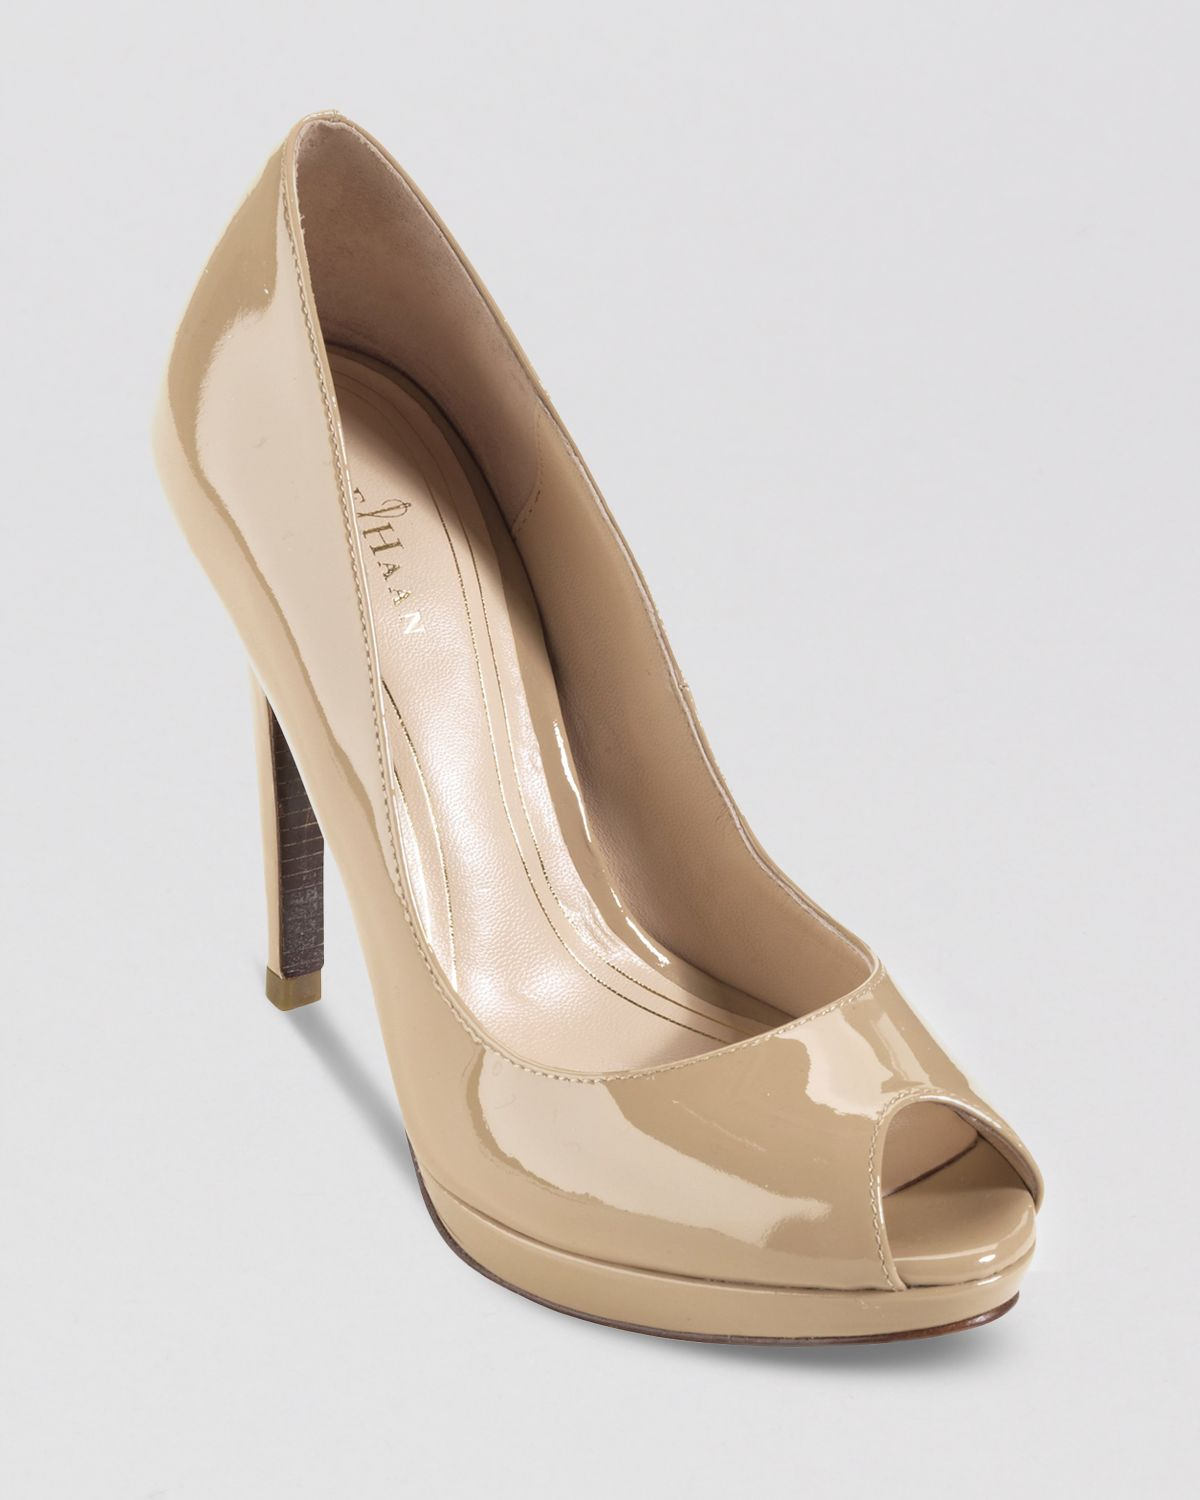 26edbf5a5d60 Lyst - Cole Haan Peep Toe Platform Pumps Chelsea High Heel in Natural